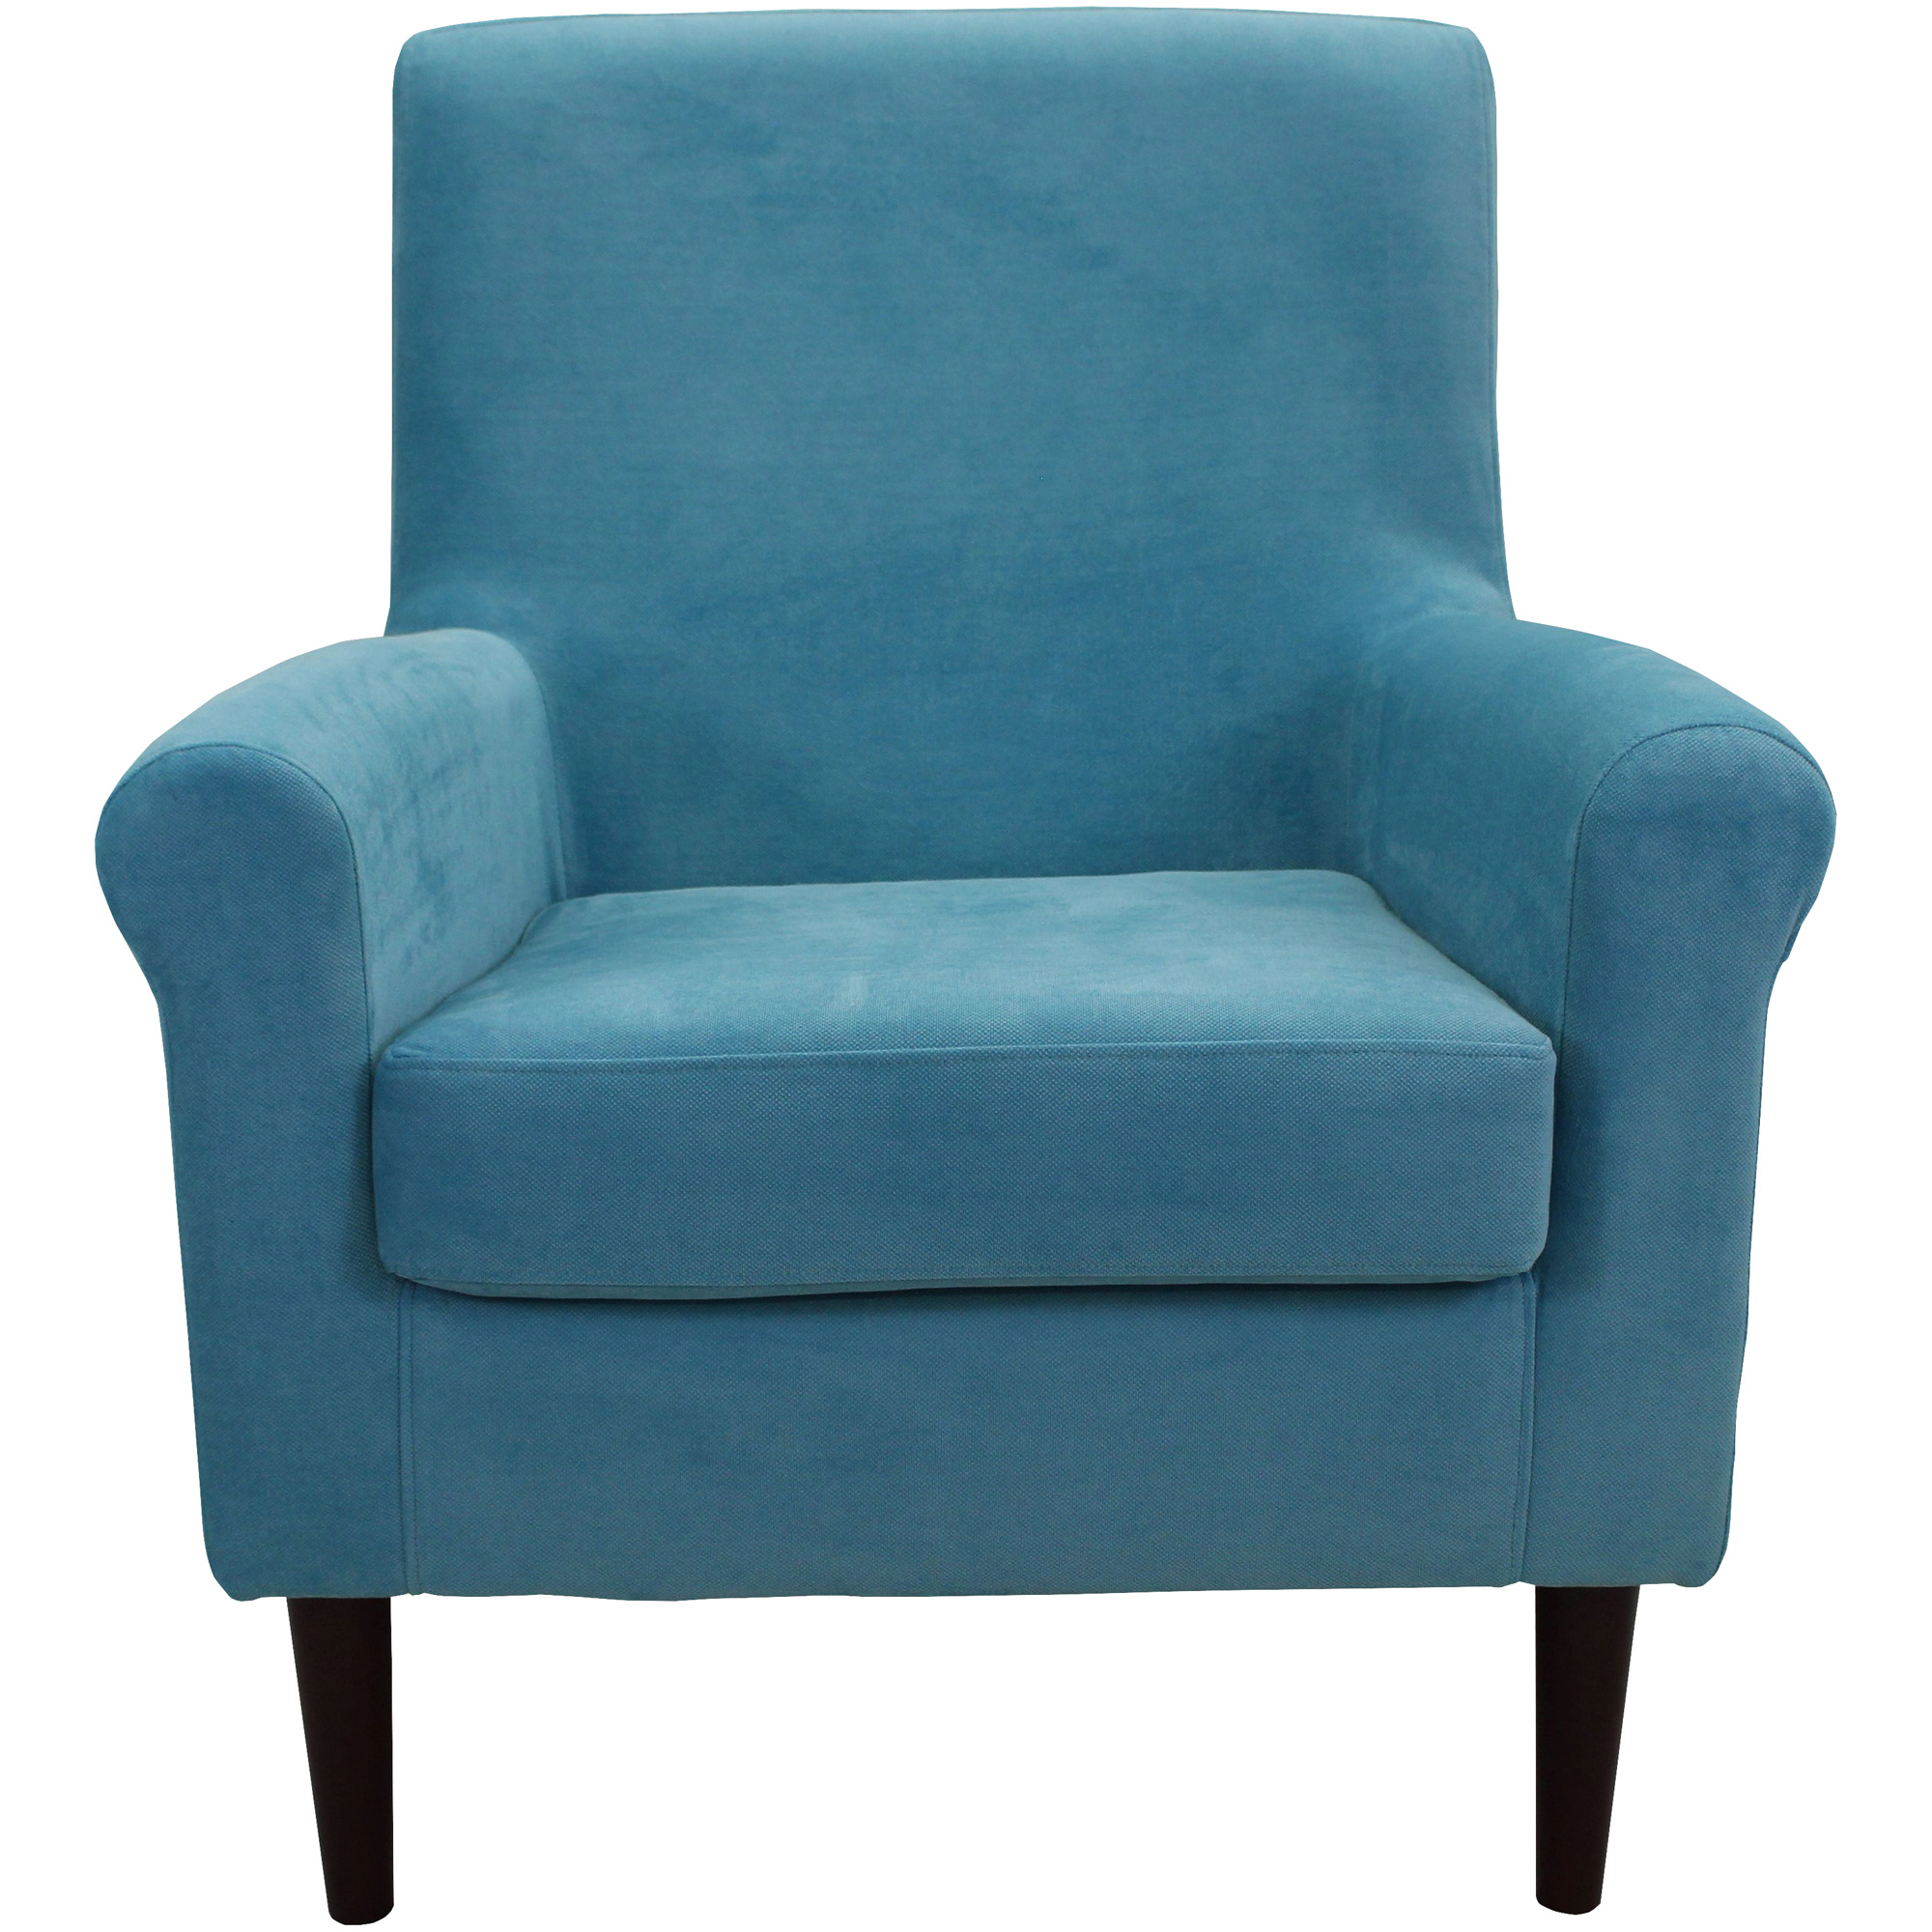 Overman | Ellis Turquoise Accent Chair